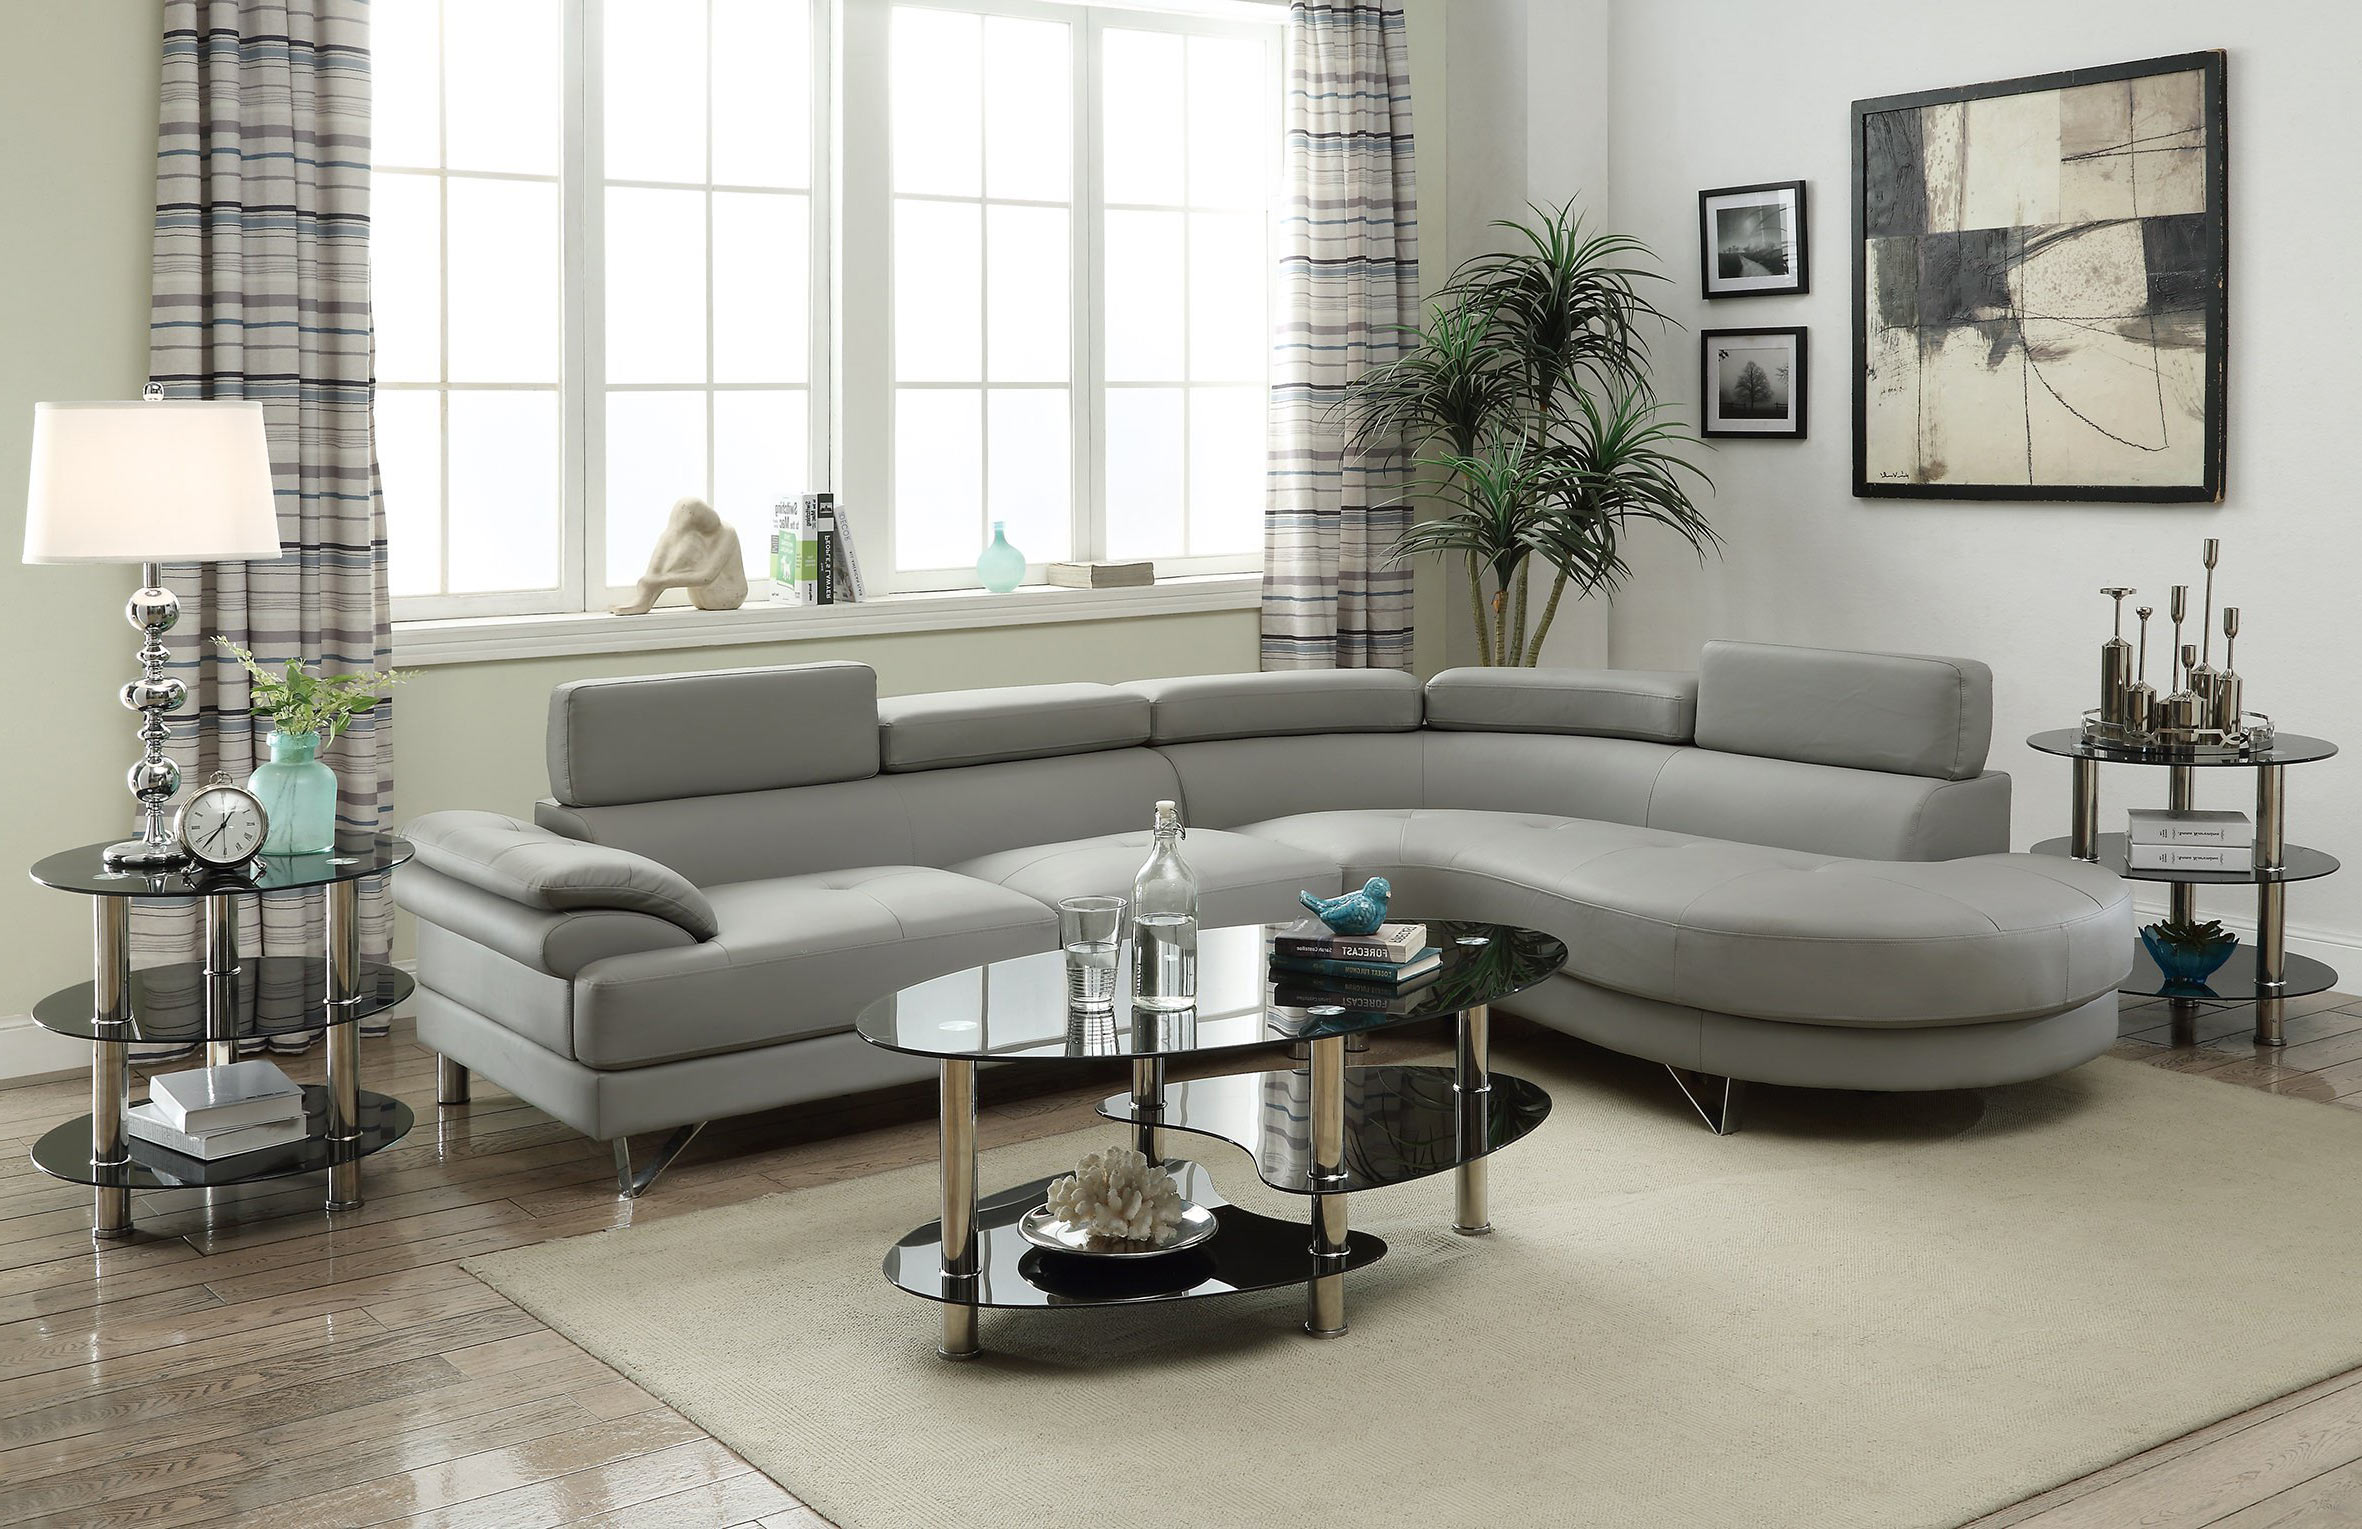 design of sectional modern gray wooden solid couch room sets full living sofas size sofa furniture grey wood